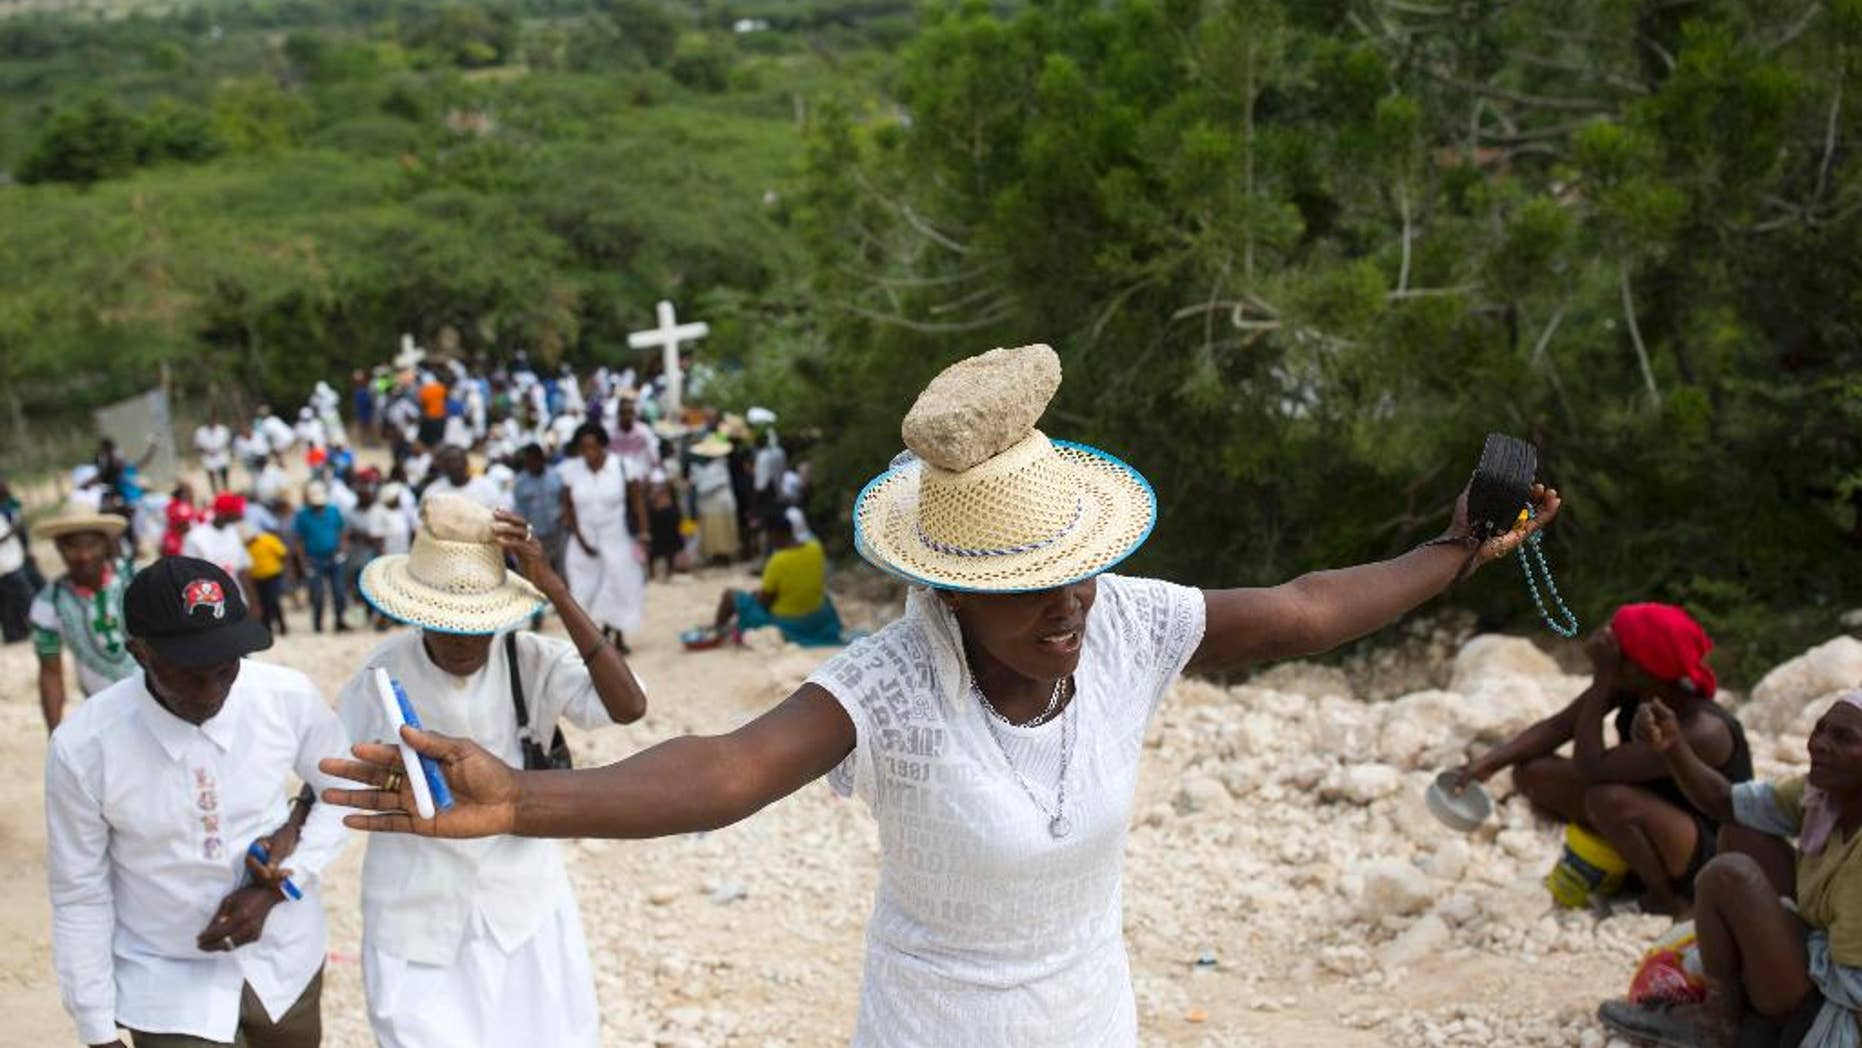 Earthquake Kills At Least 10, Injures More Than 100 In Haiti